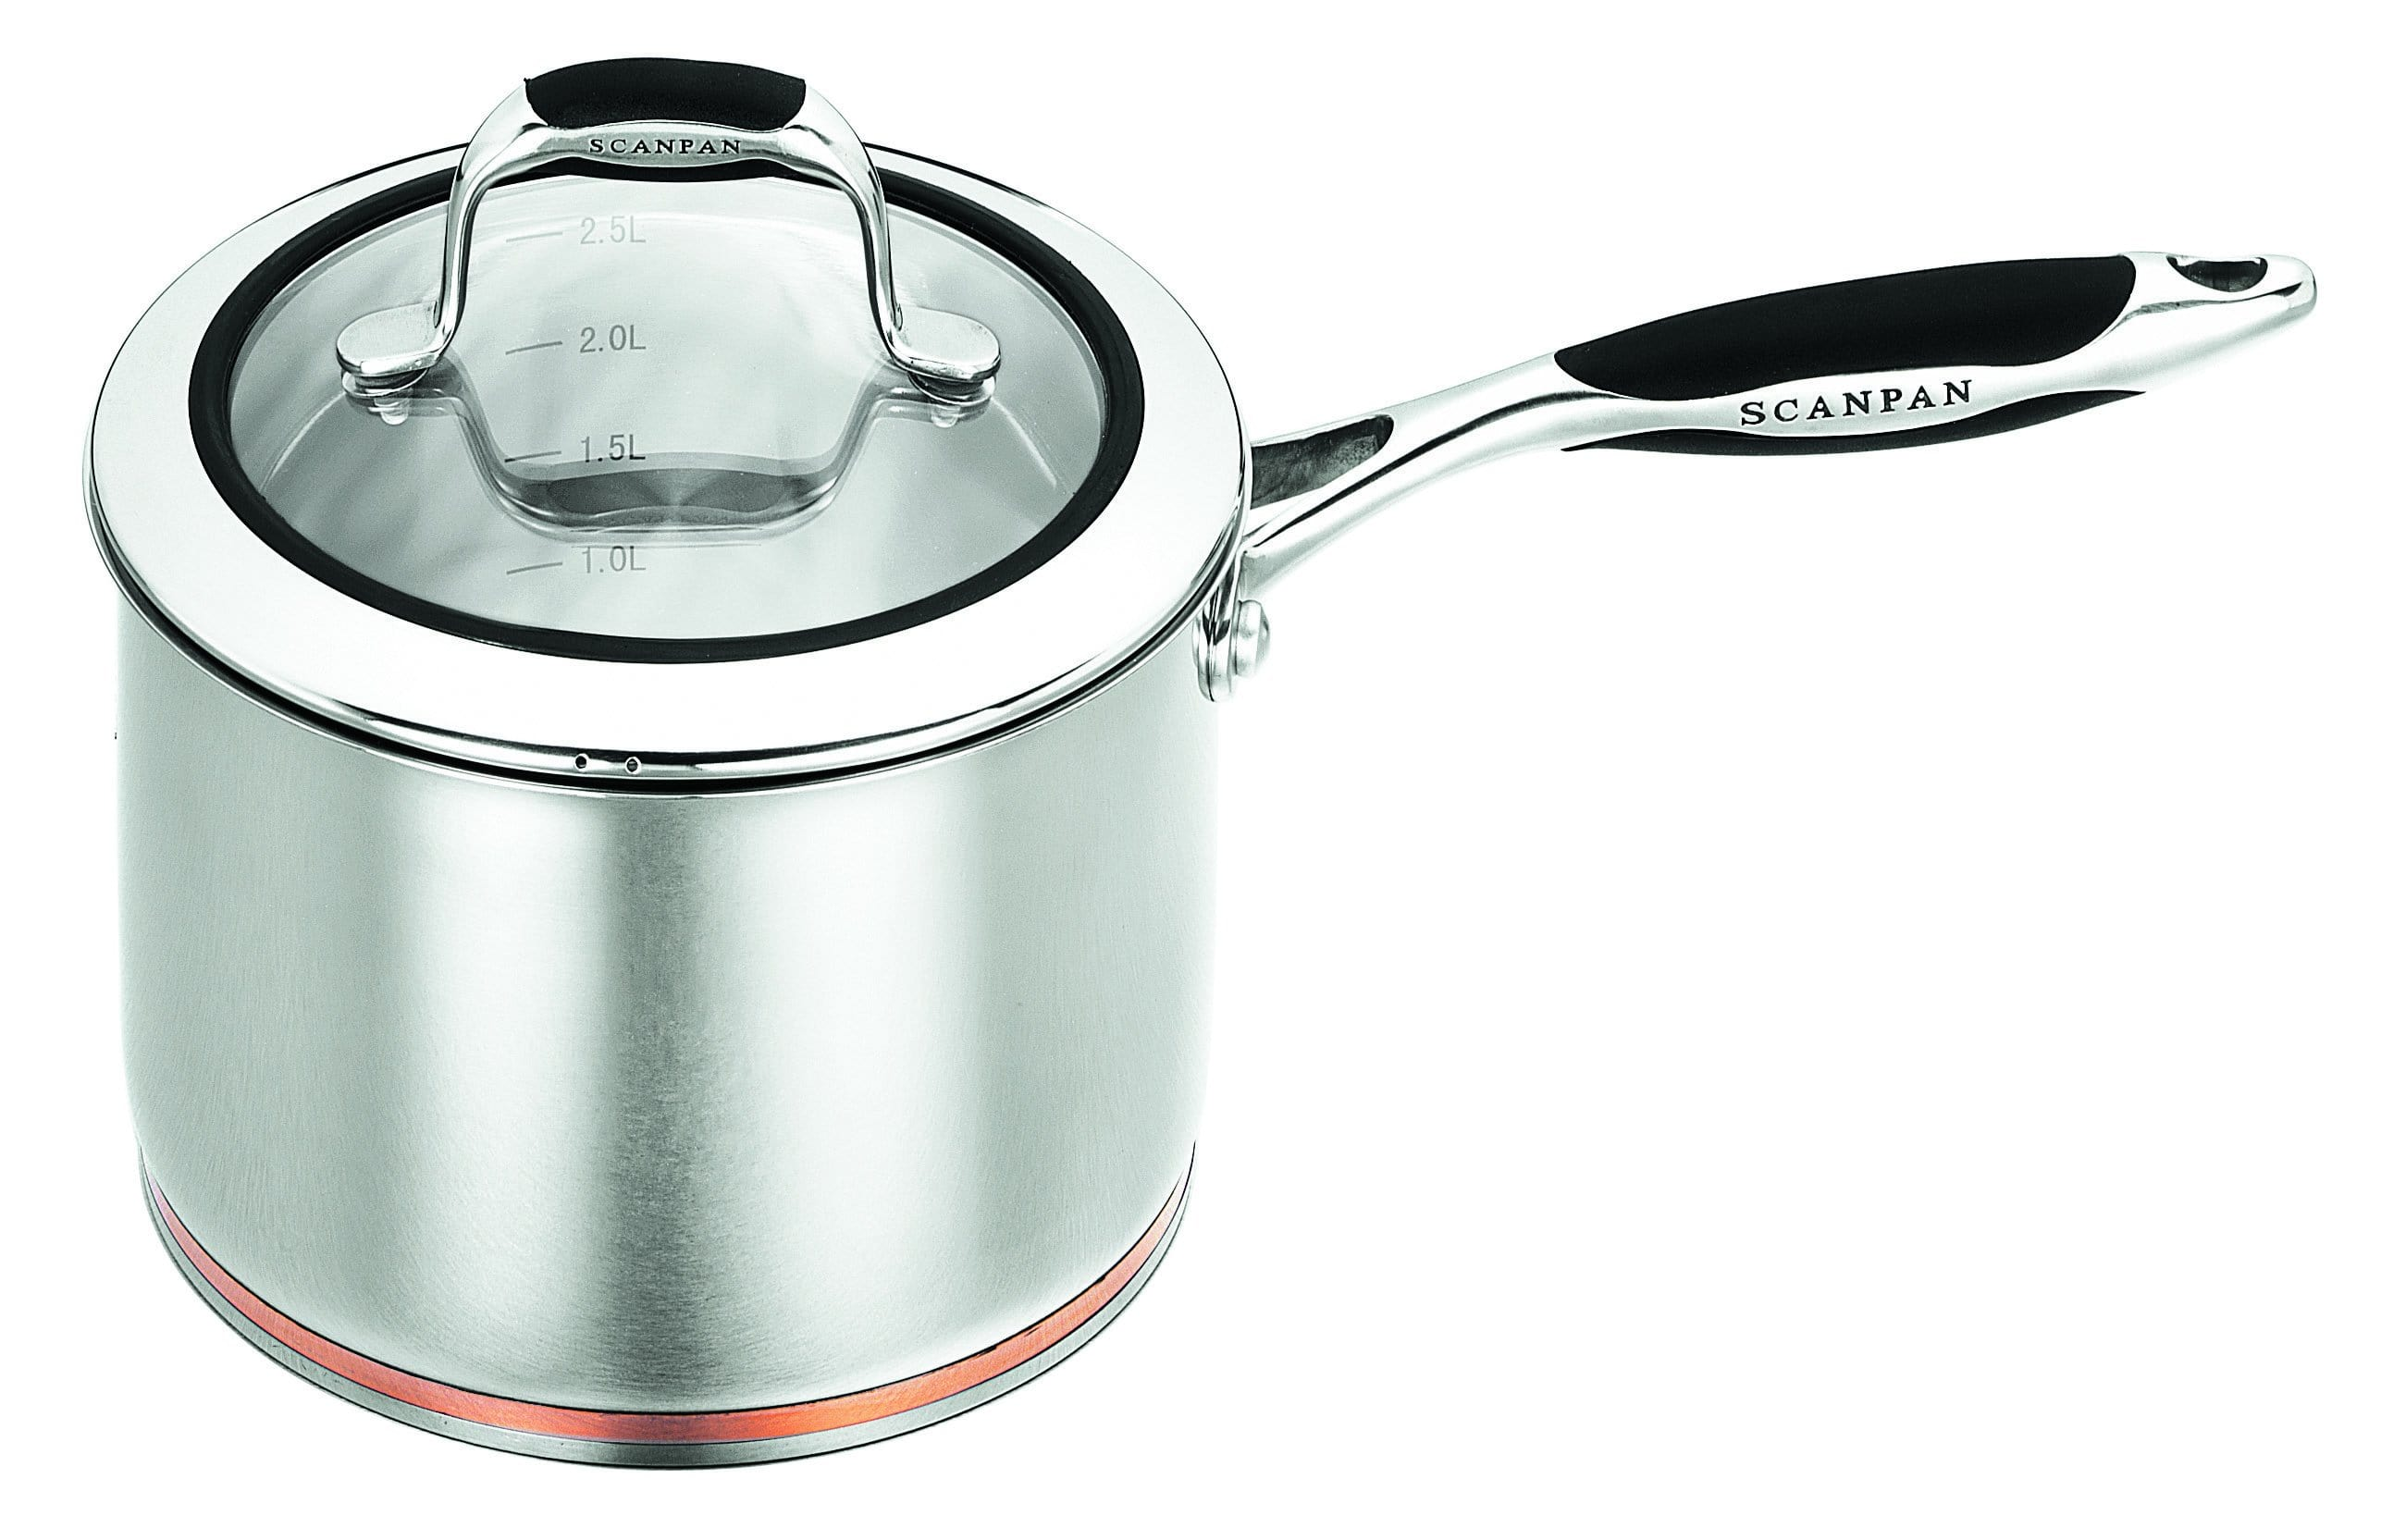 Scanpan Coppernox Saucepan 18cm/2.5L - Bronx Homewares